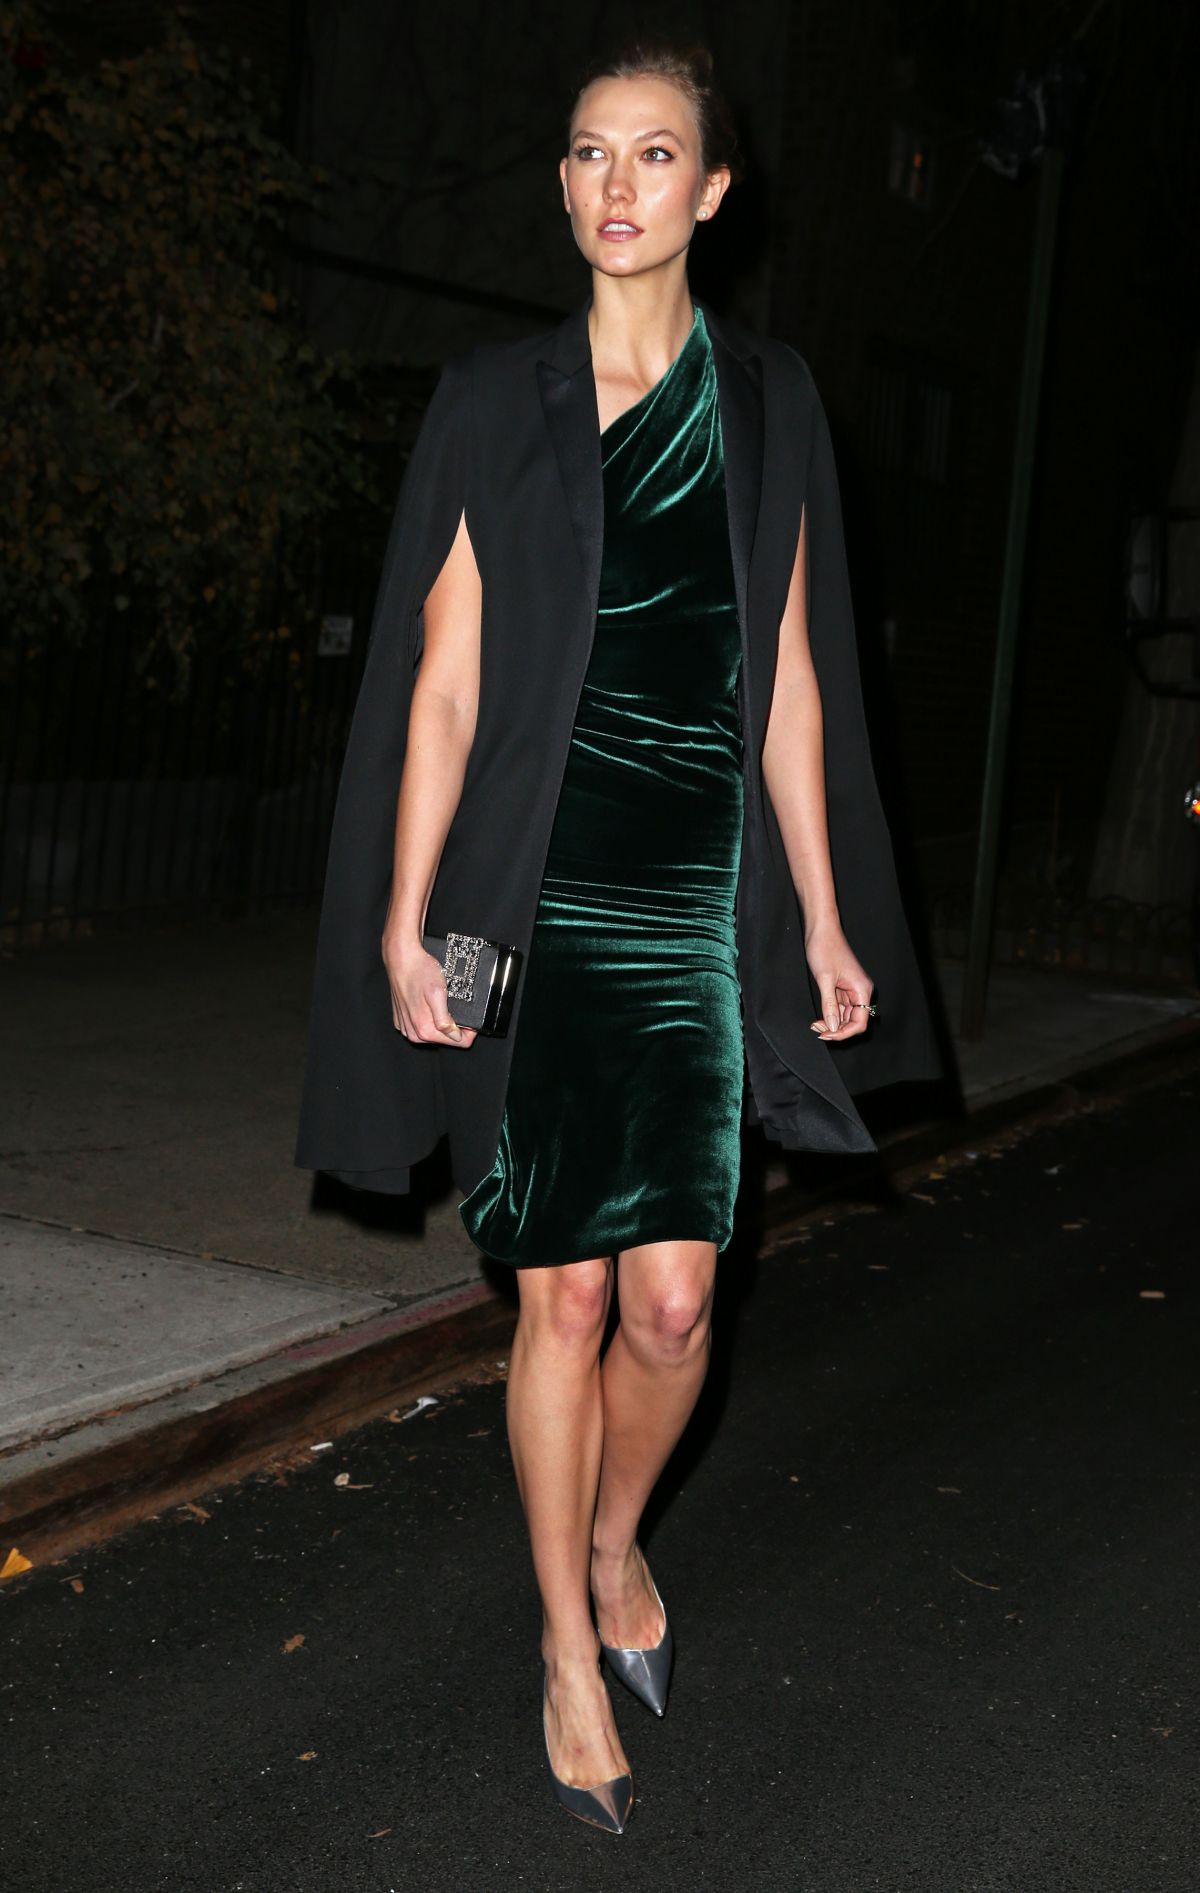 KARLIE KLOSS Heading to a Party in New York 12/11/2015